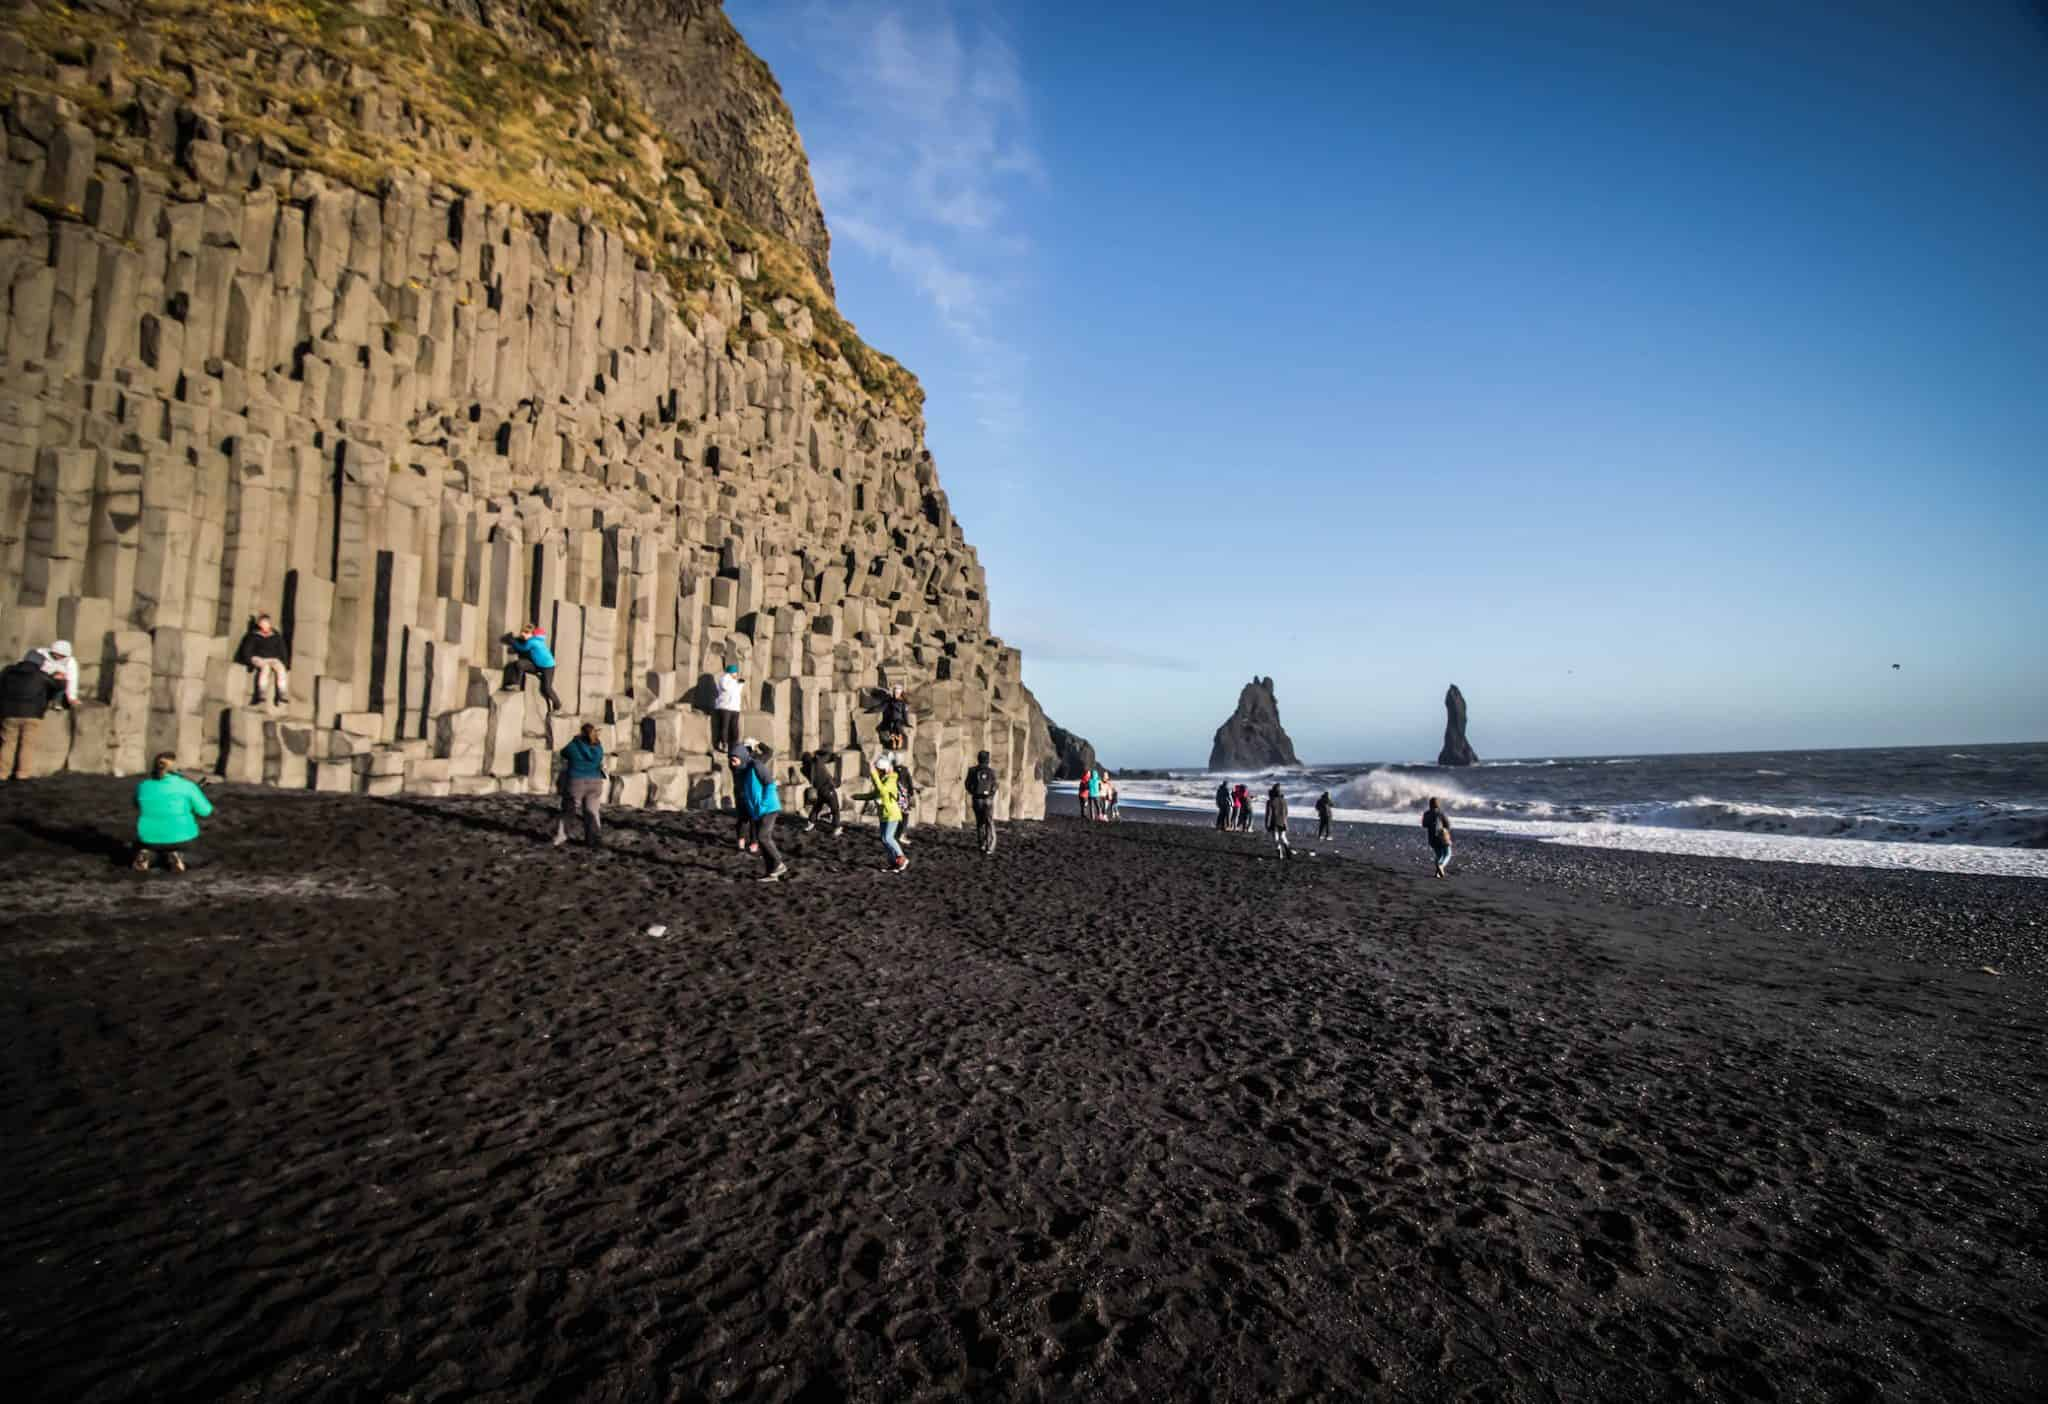 reynisfjara the famous black sand beach in iceland to. Black Bedroom Furniture Sets. Home Design Ideas